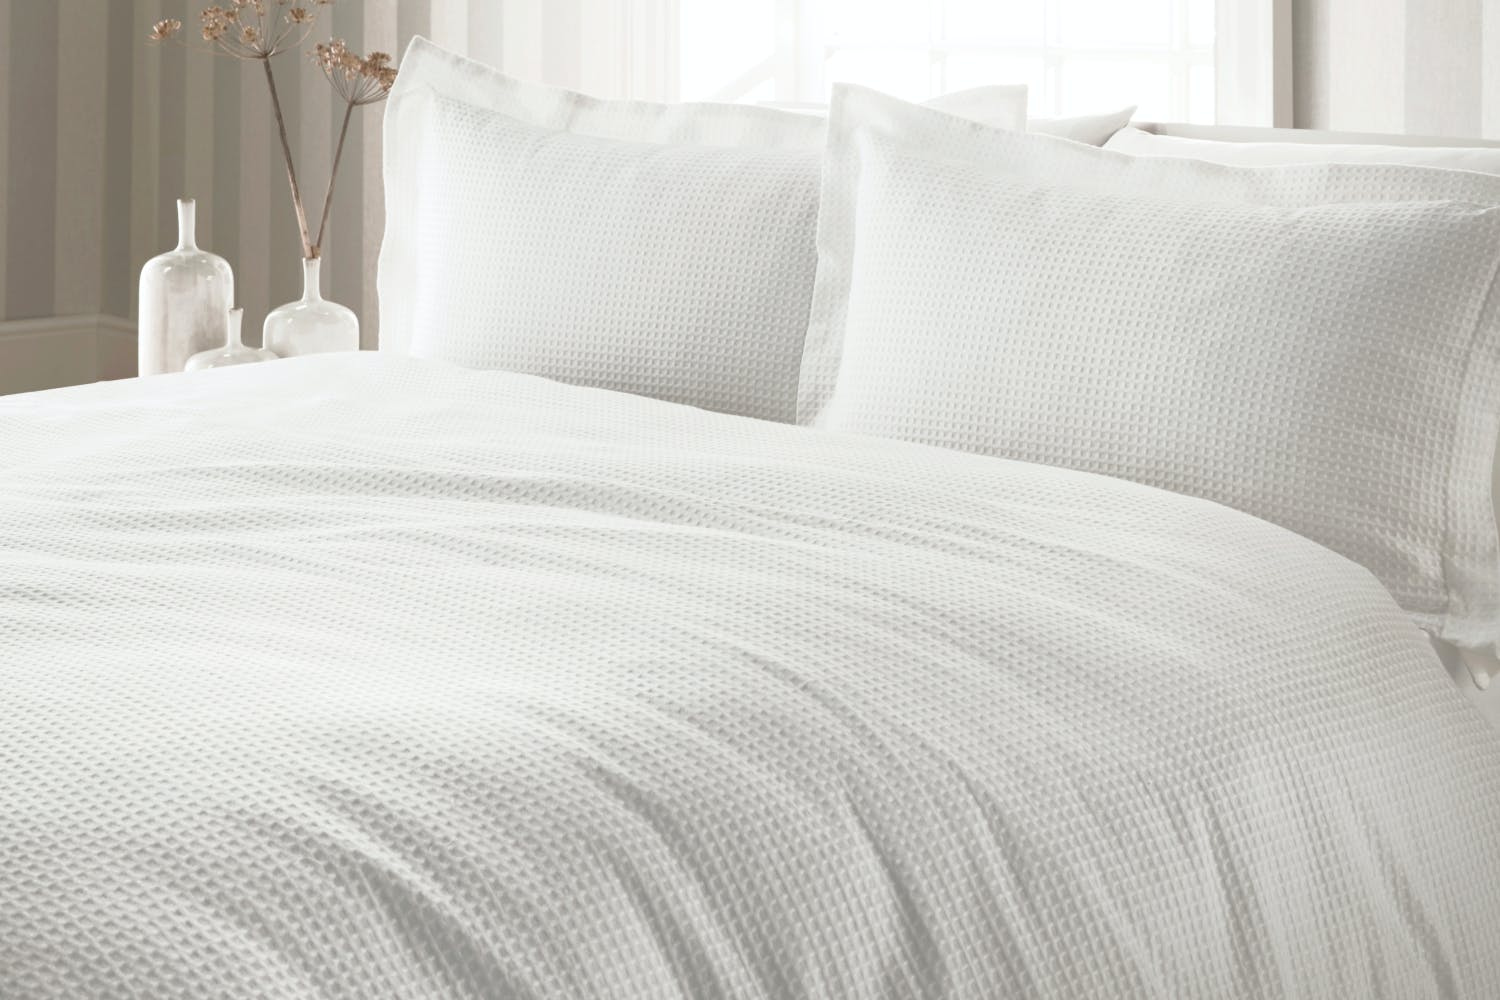 Outrageous Benefits of using Duvet covers